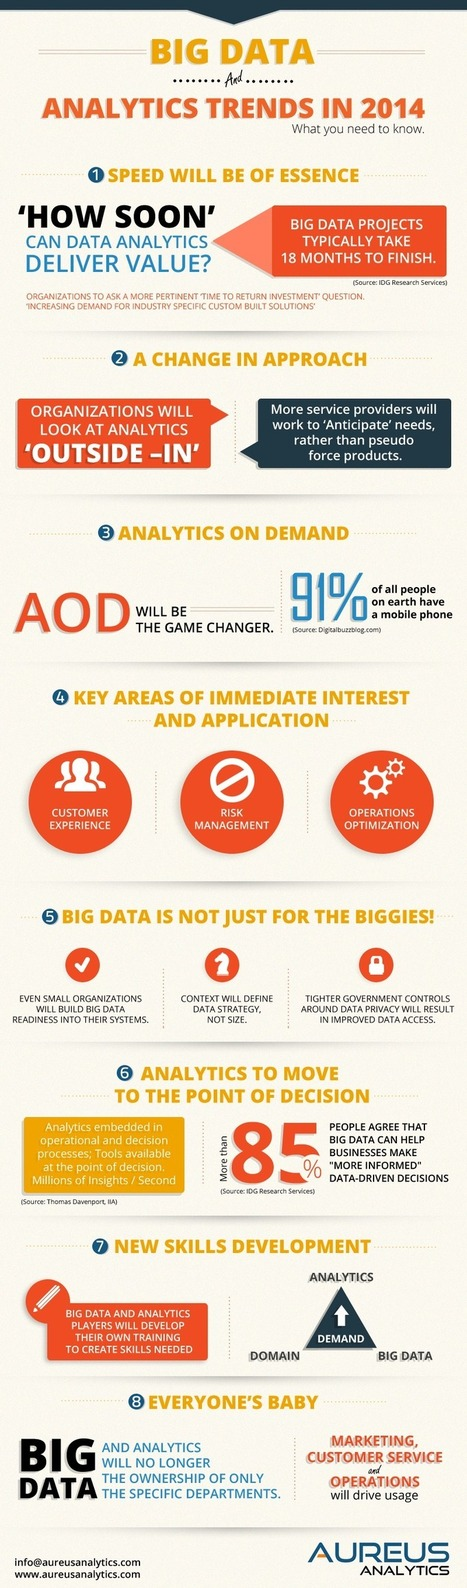 Big-Data-Analytics-Trends-2014-Infographic.png (800x2721 pixels) | Web & biz perf | Scoop.it